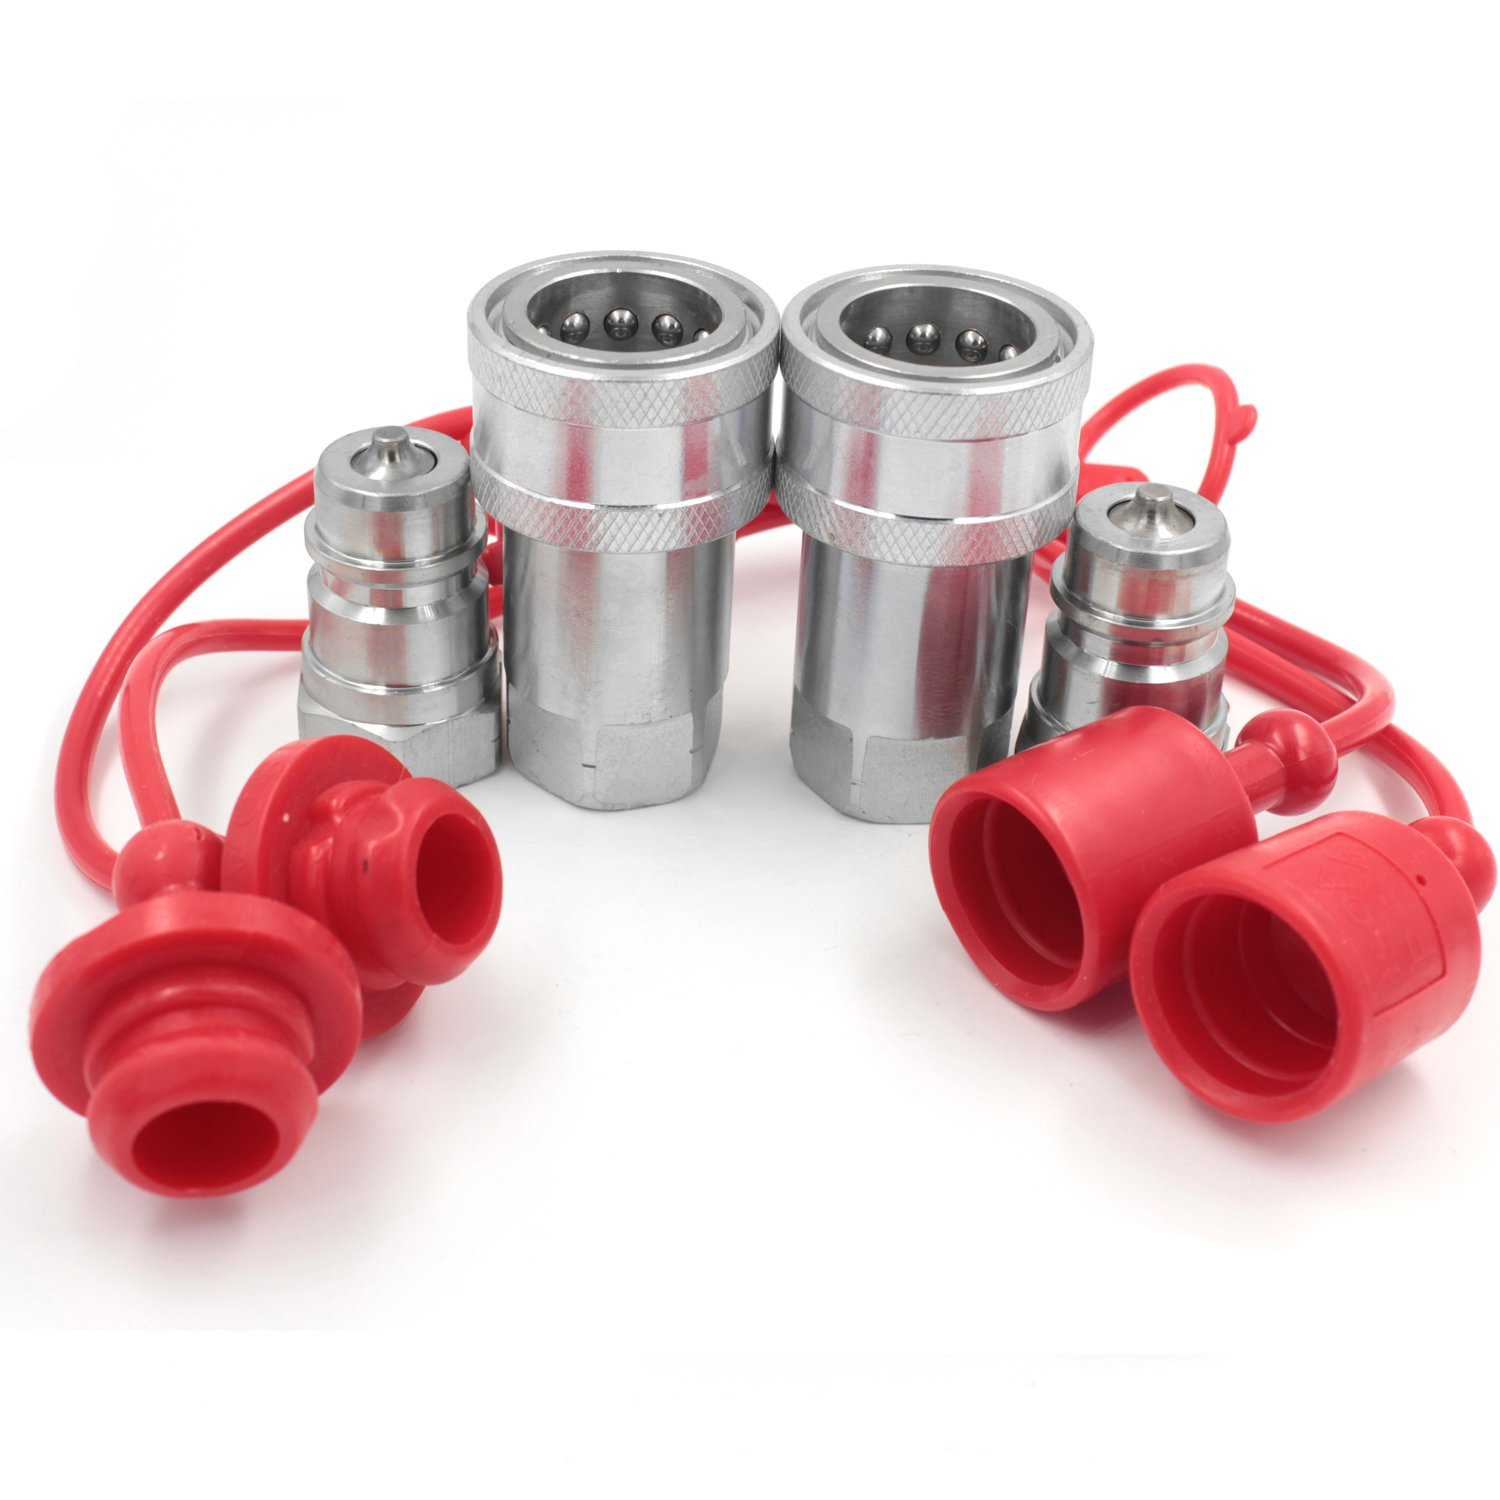 2 sets ISO7241-A 1/2 hydraulic Quick Couplings Ball Fitting with Dust Caps Gute